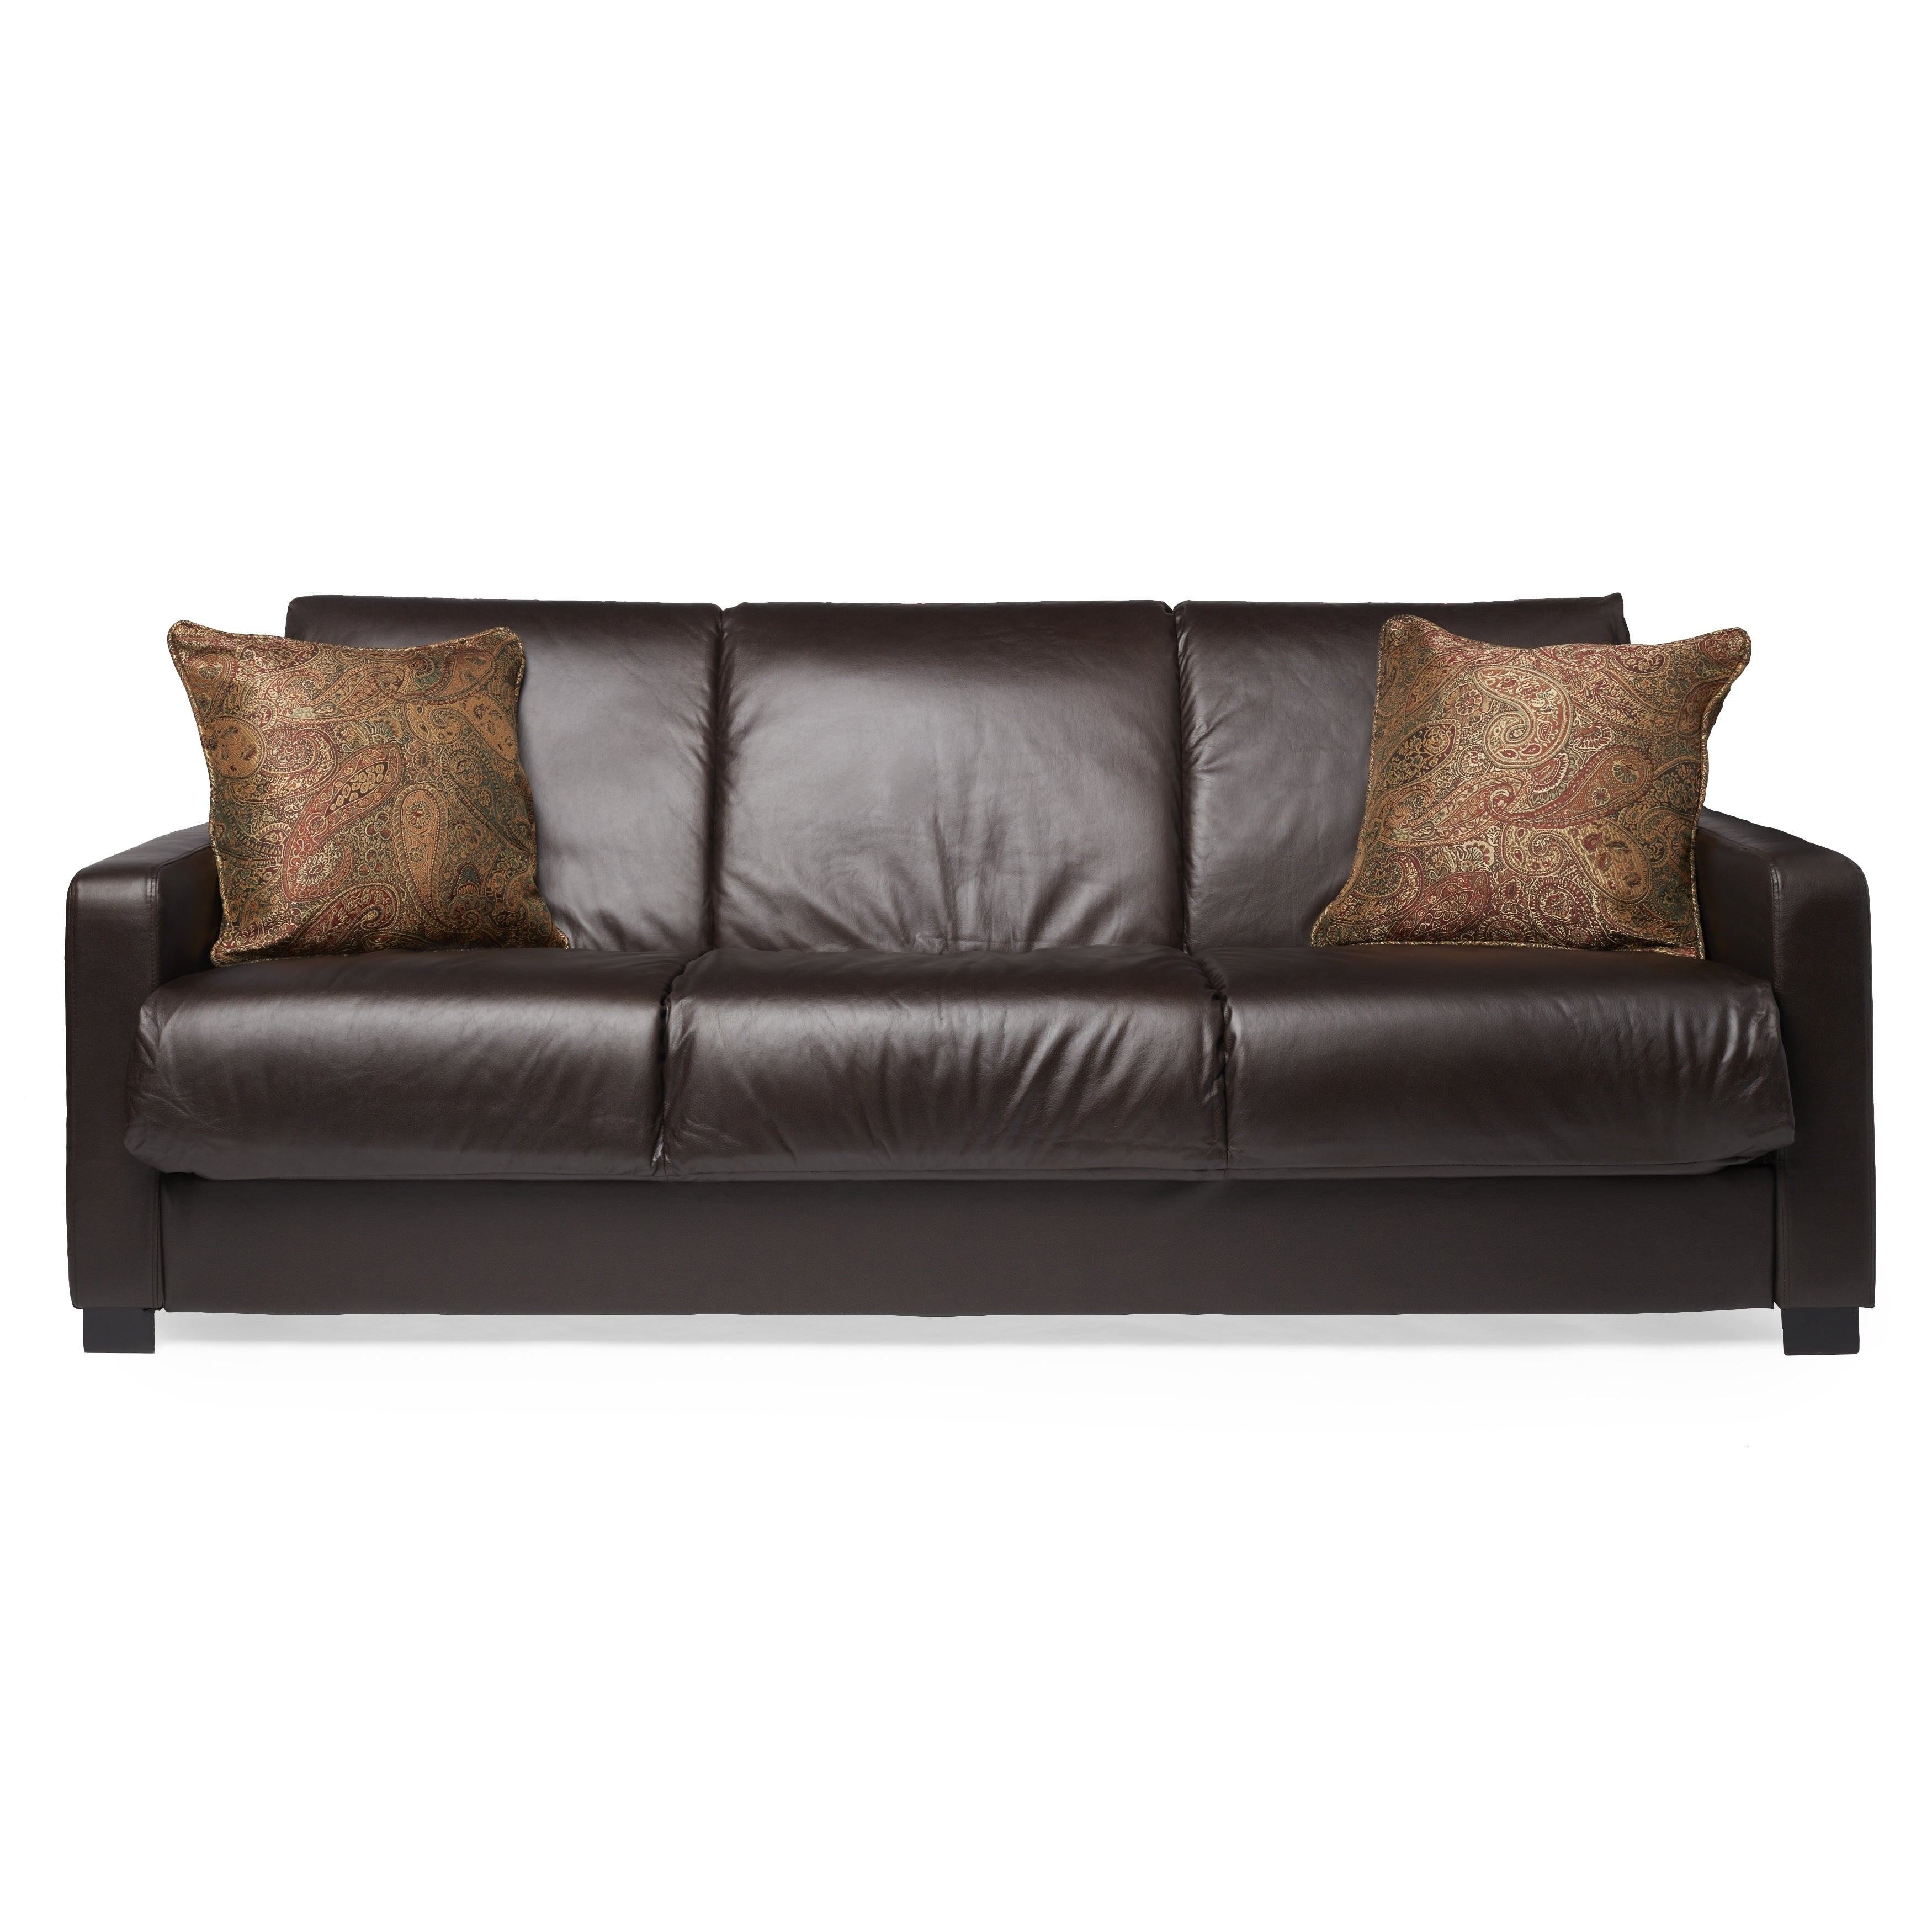 Leather Futon Sleeper In Espresso On Free Shipping Today Com 5503604